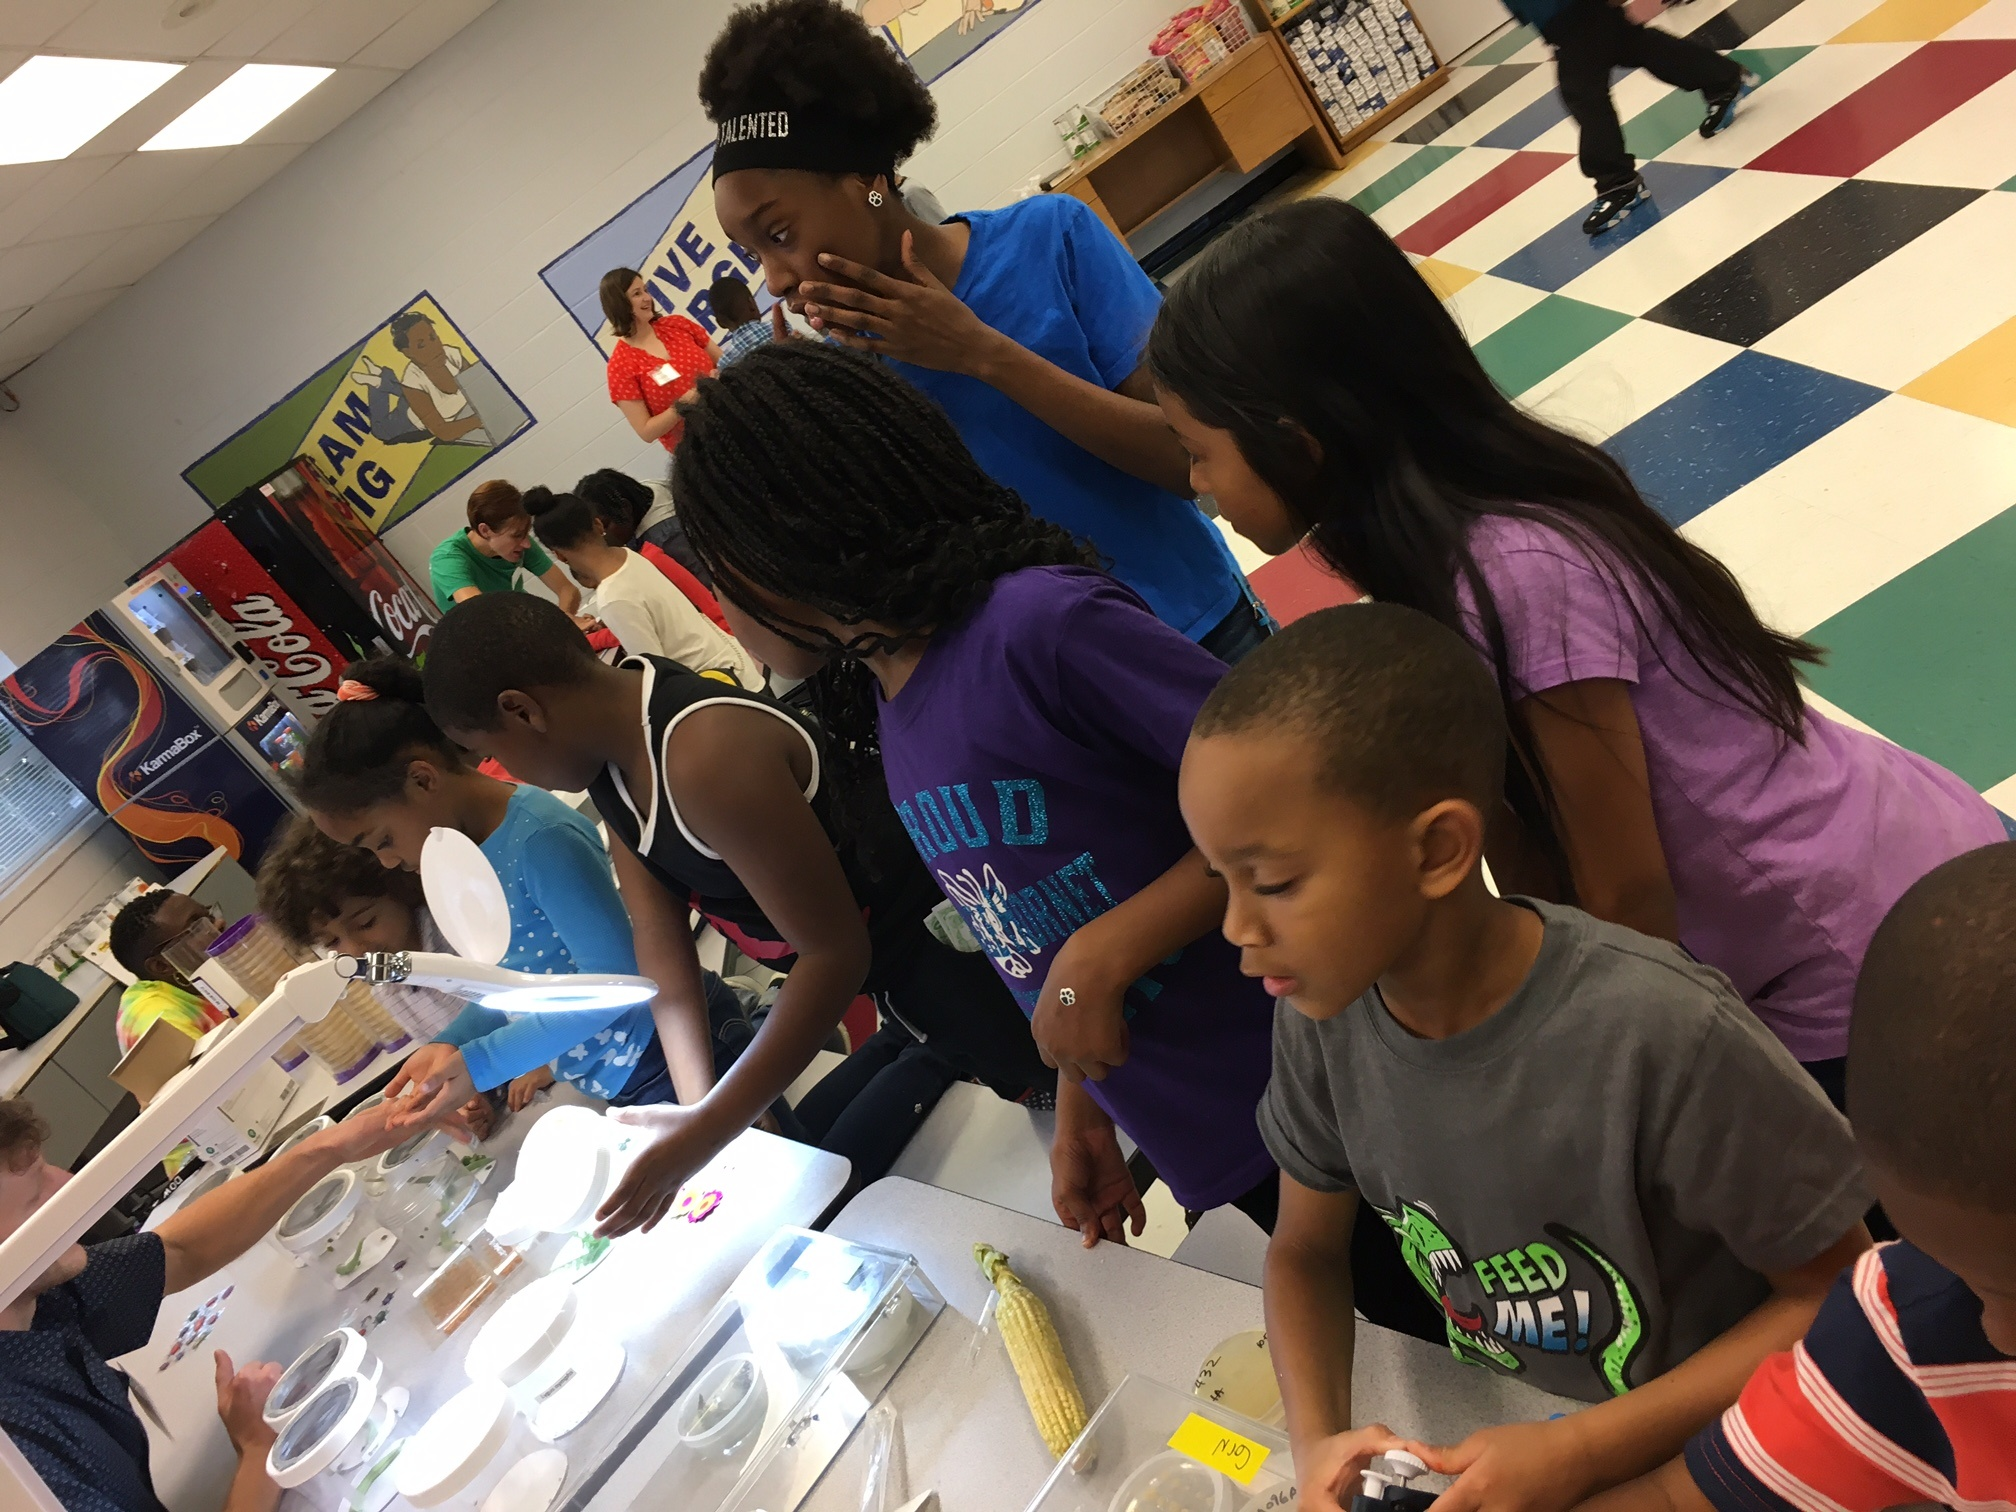 Students crowd around tables filled with bugs, plants, fungi, and experiment supplies ready to do science.